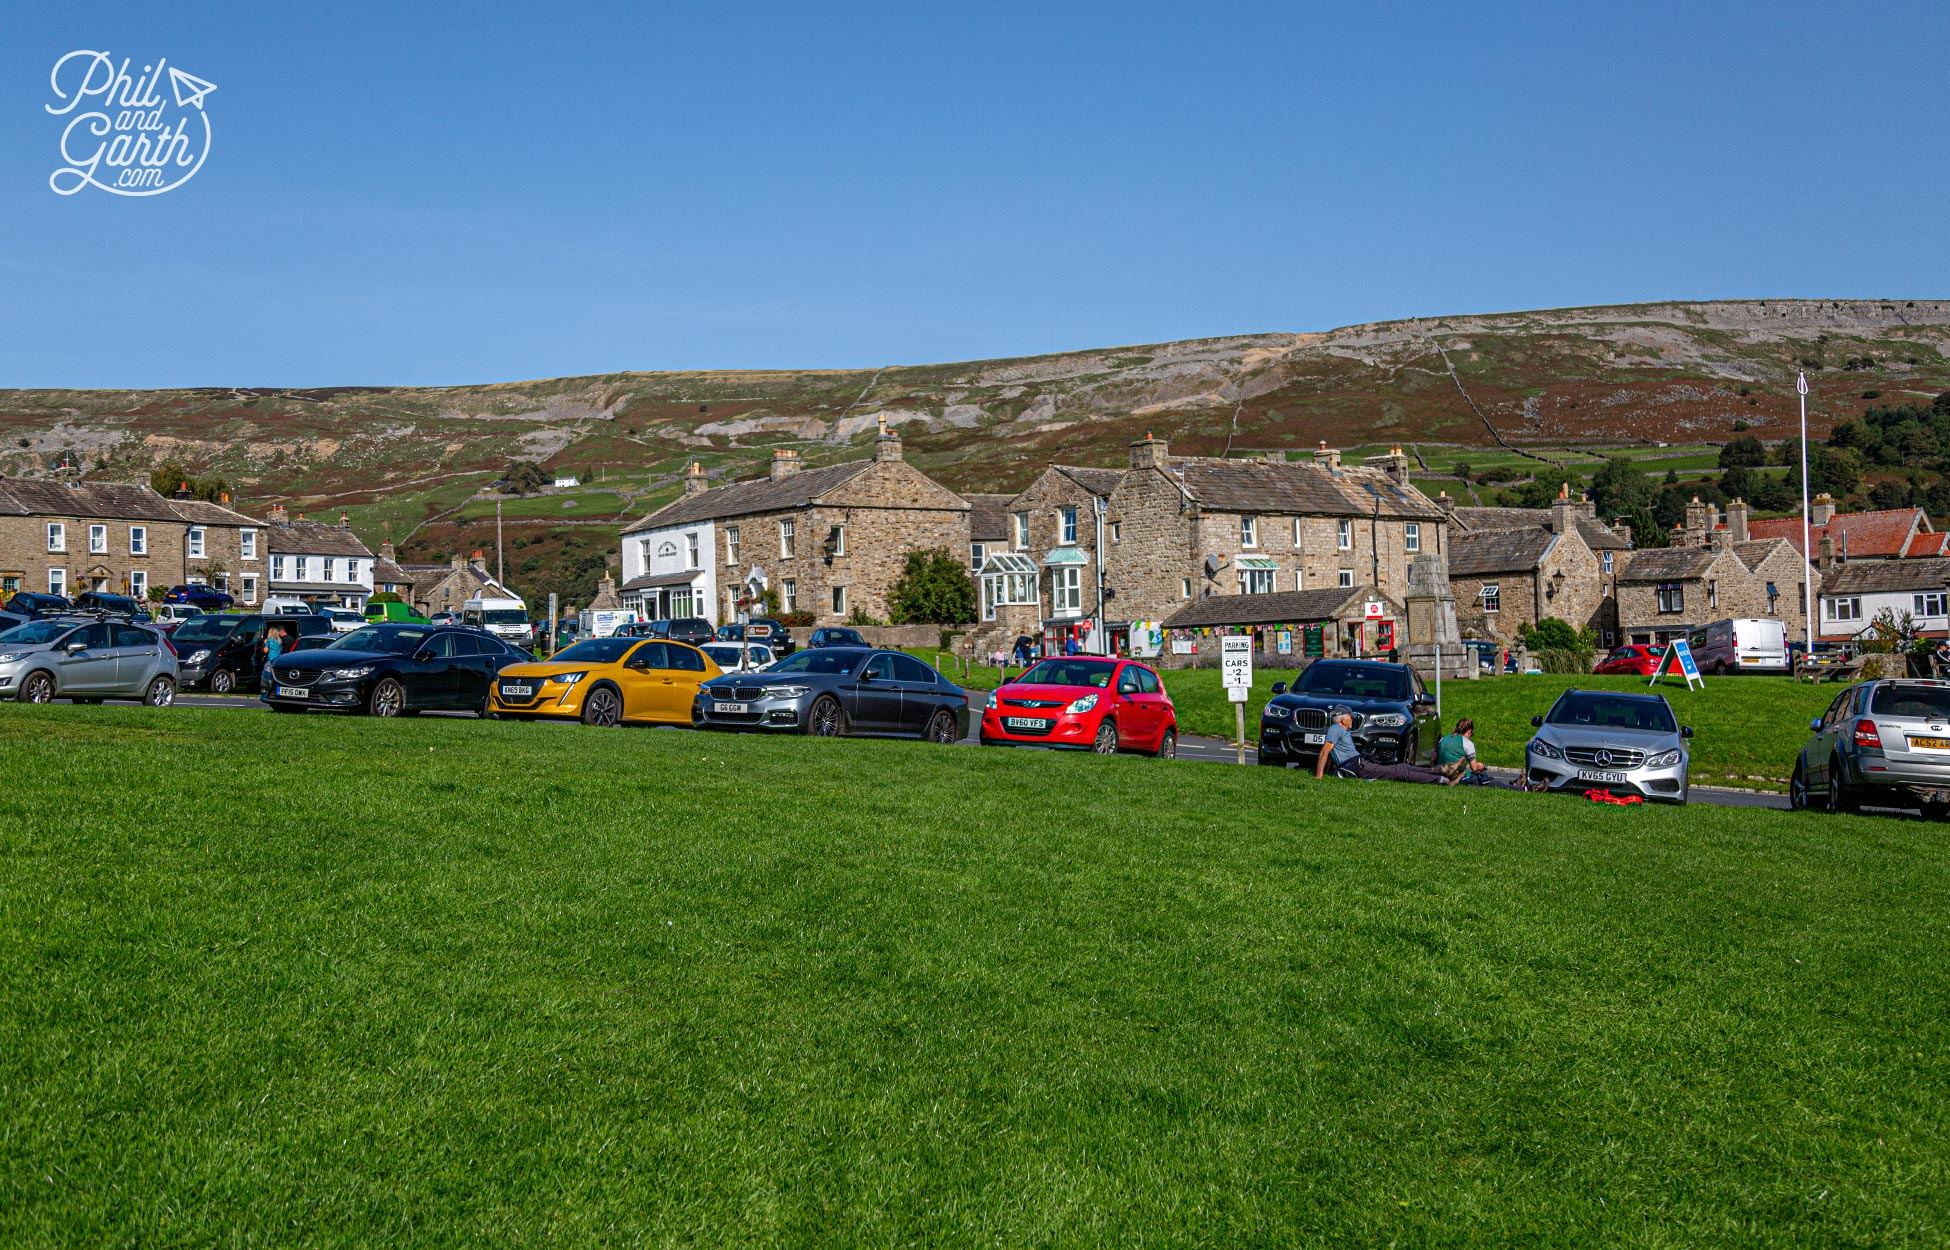 Reeth's village green is surrounded by pubs, shops and homes